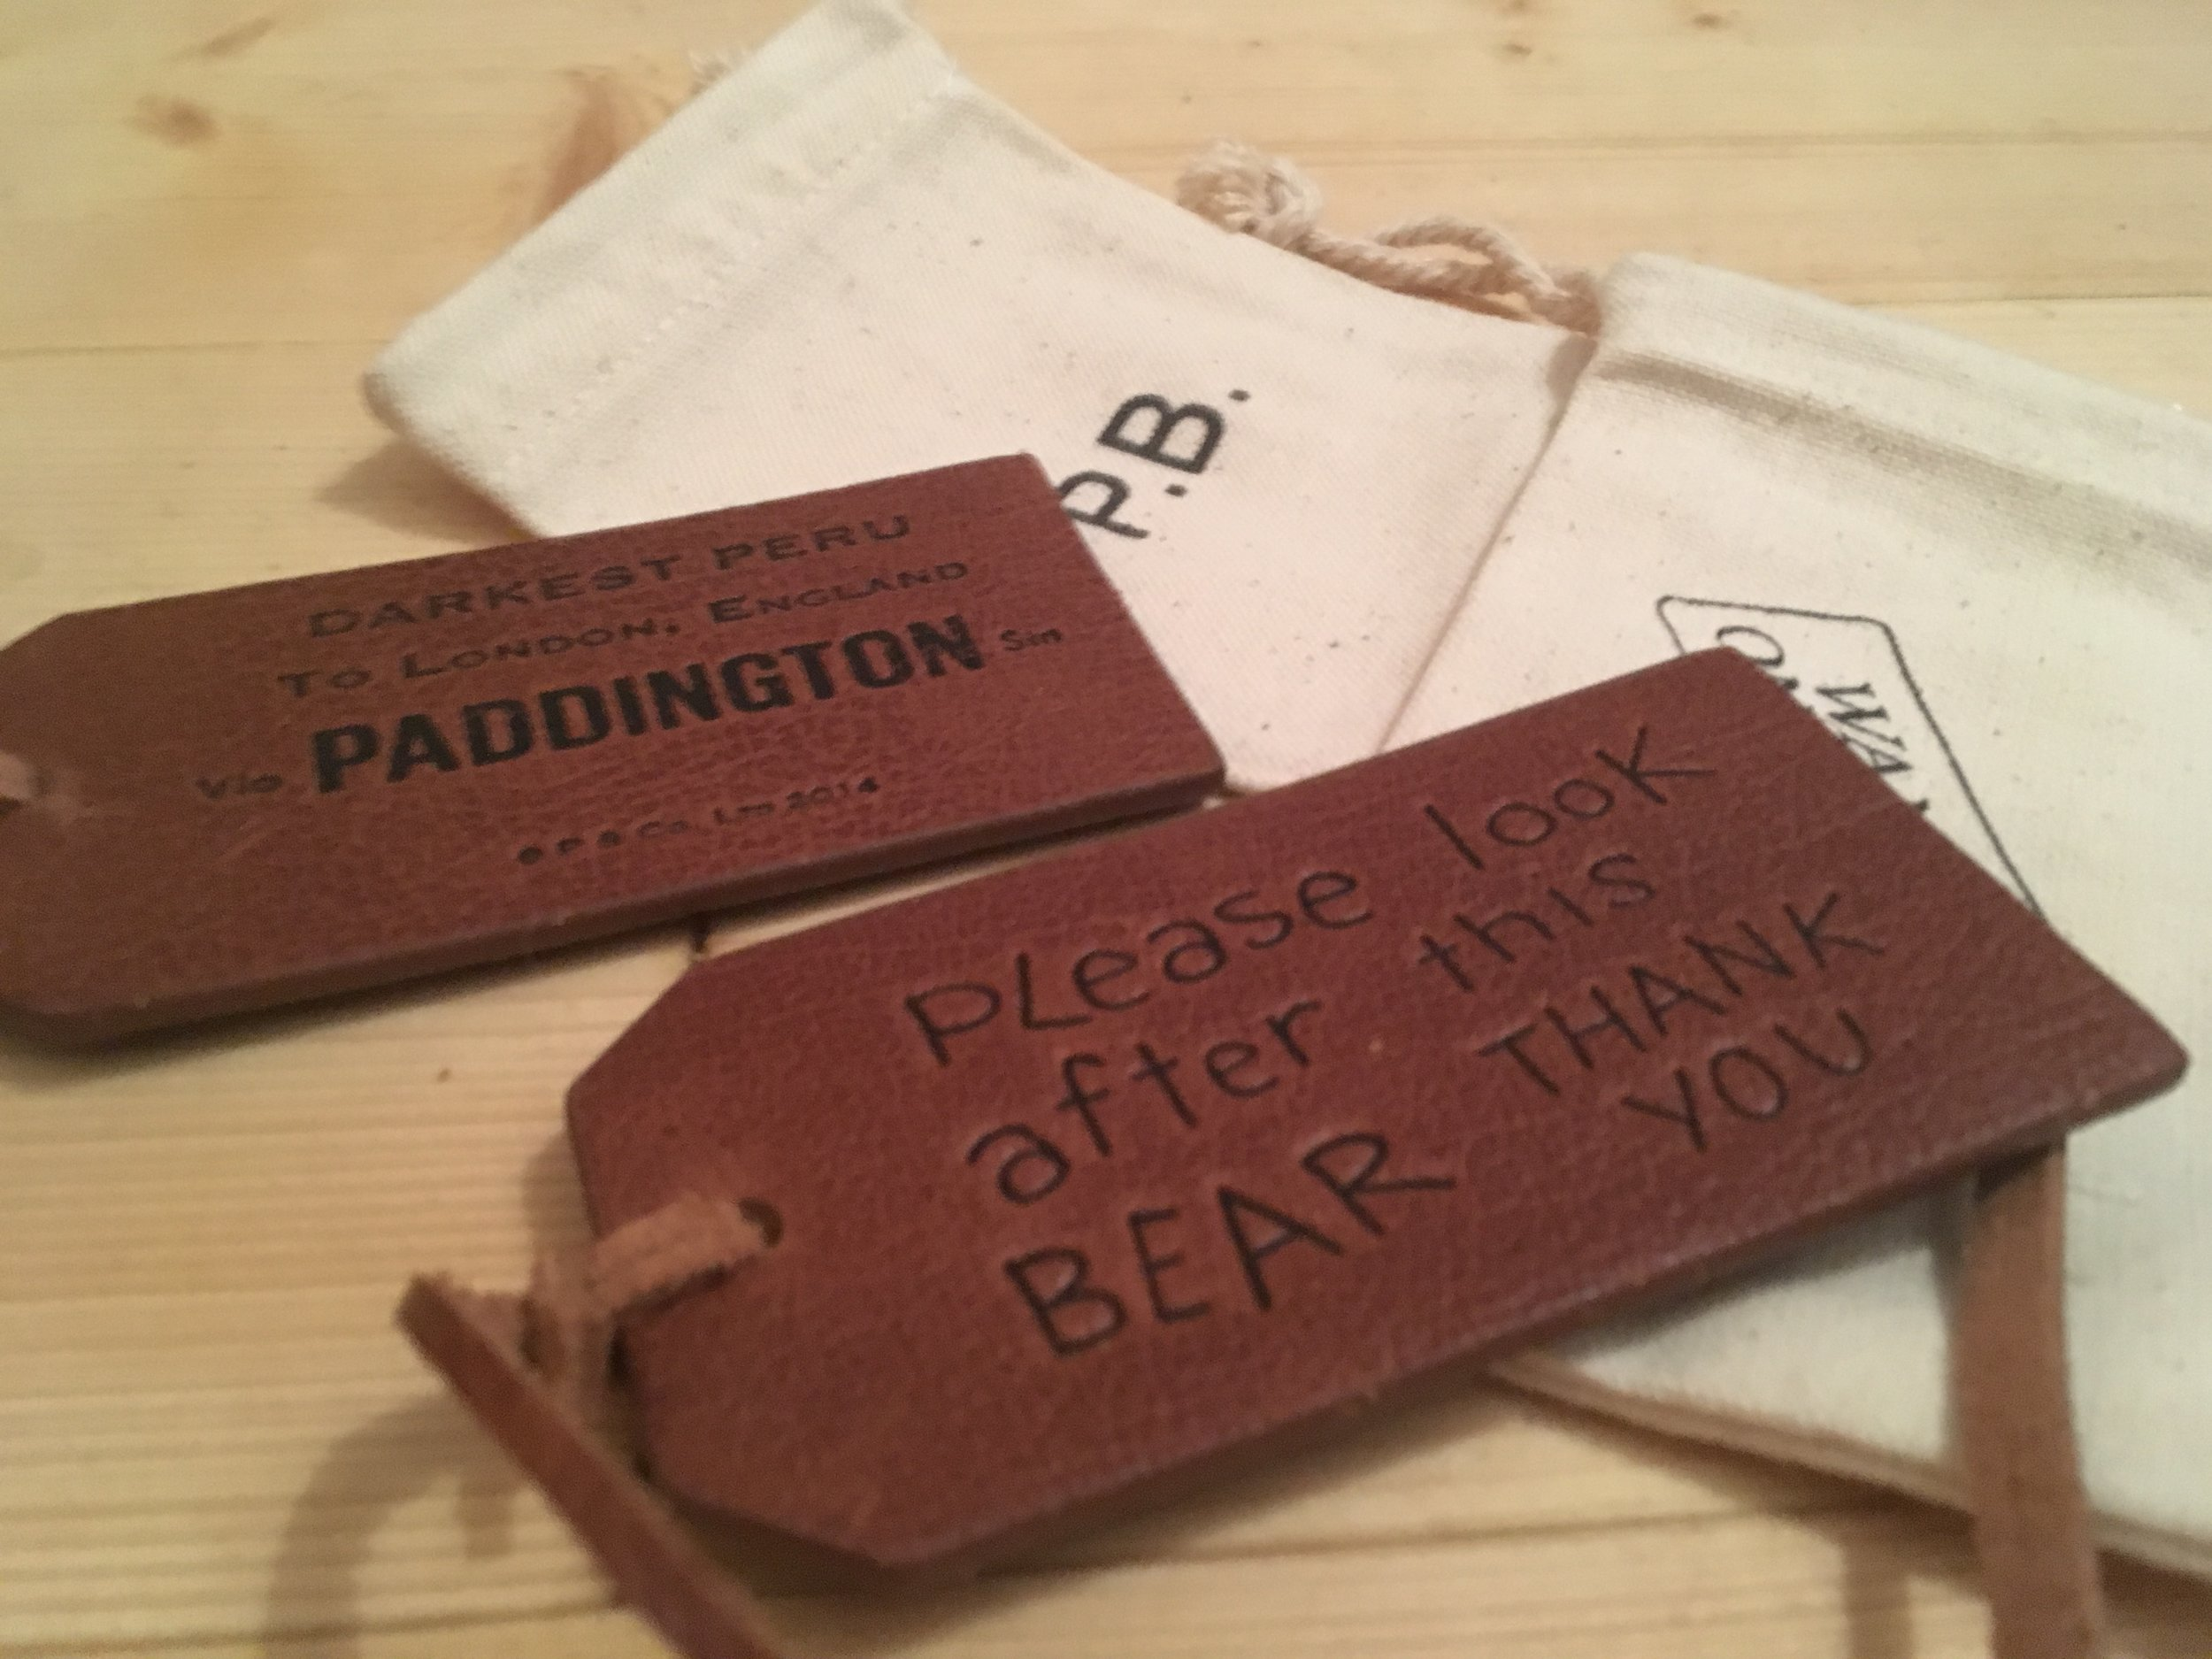 Soft leather replacement tag for your Gabrielle Designs Paddington Bear, down to 12.99 in this crazy, frenzied 'simply must have' Black Friday Xmas sale